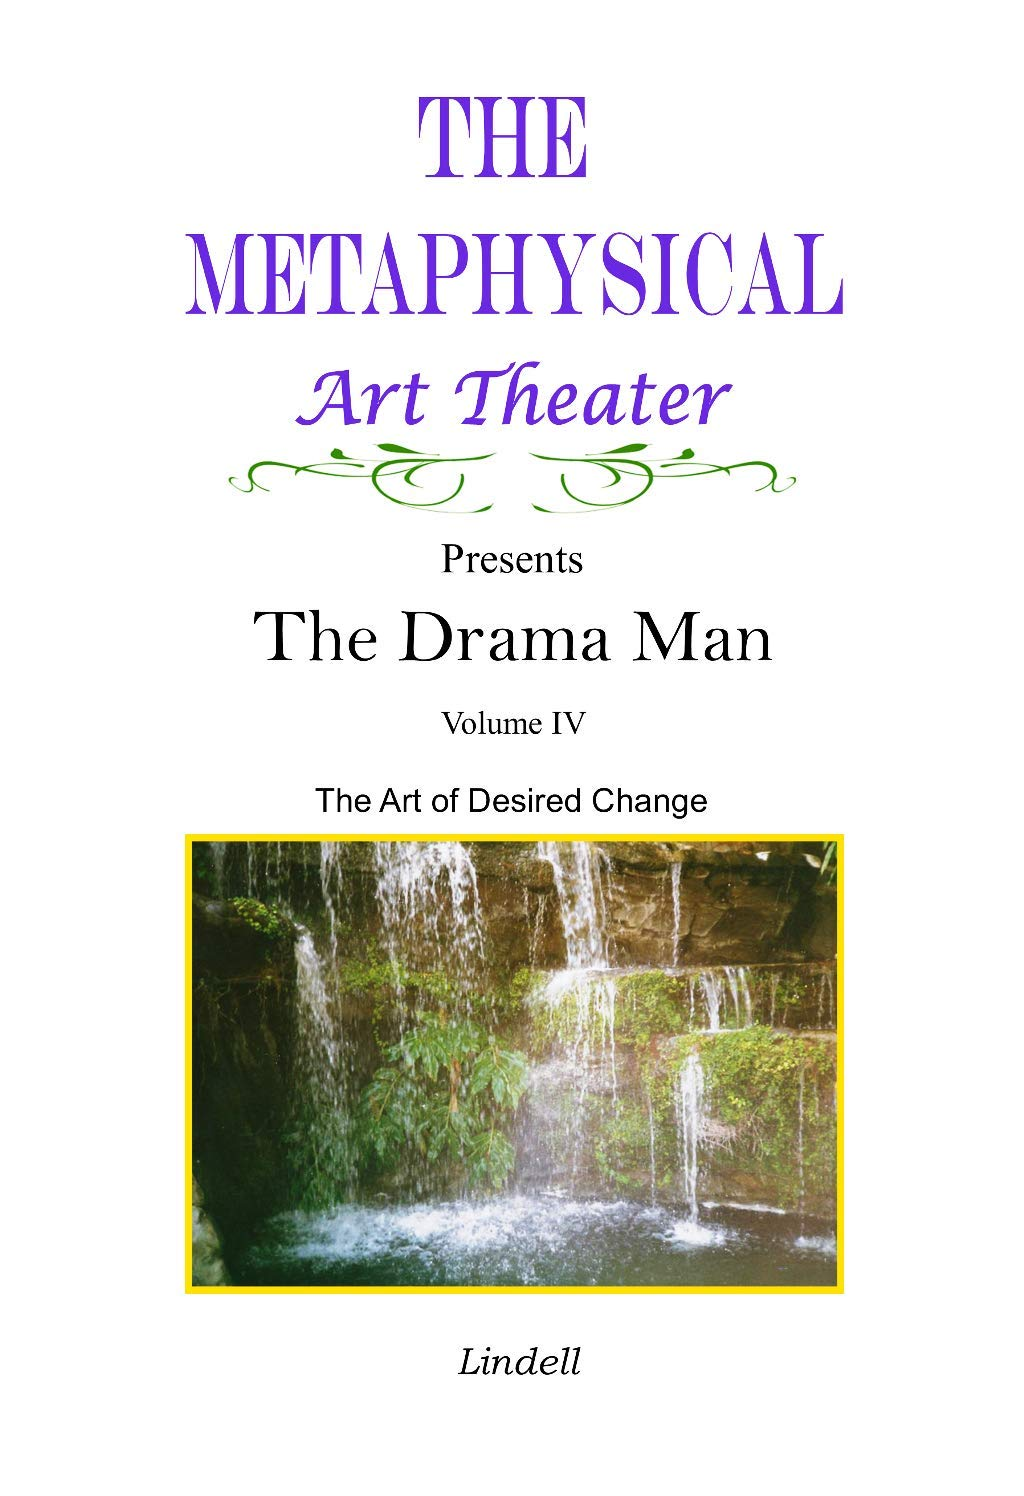 The Metaphysical Art Theater Presents the Drama Man: The Art of Desired Change, Volume IV